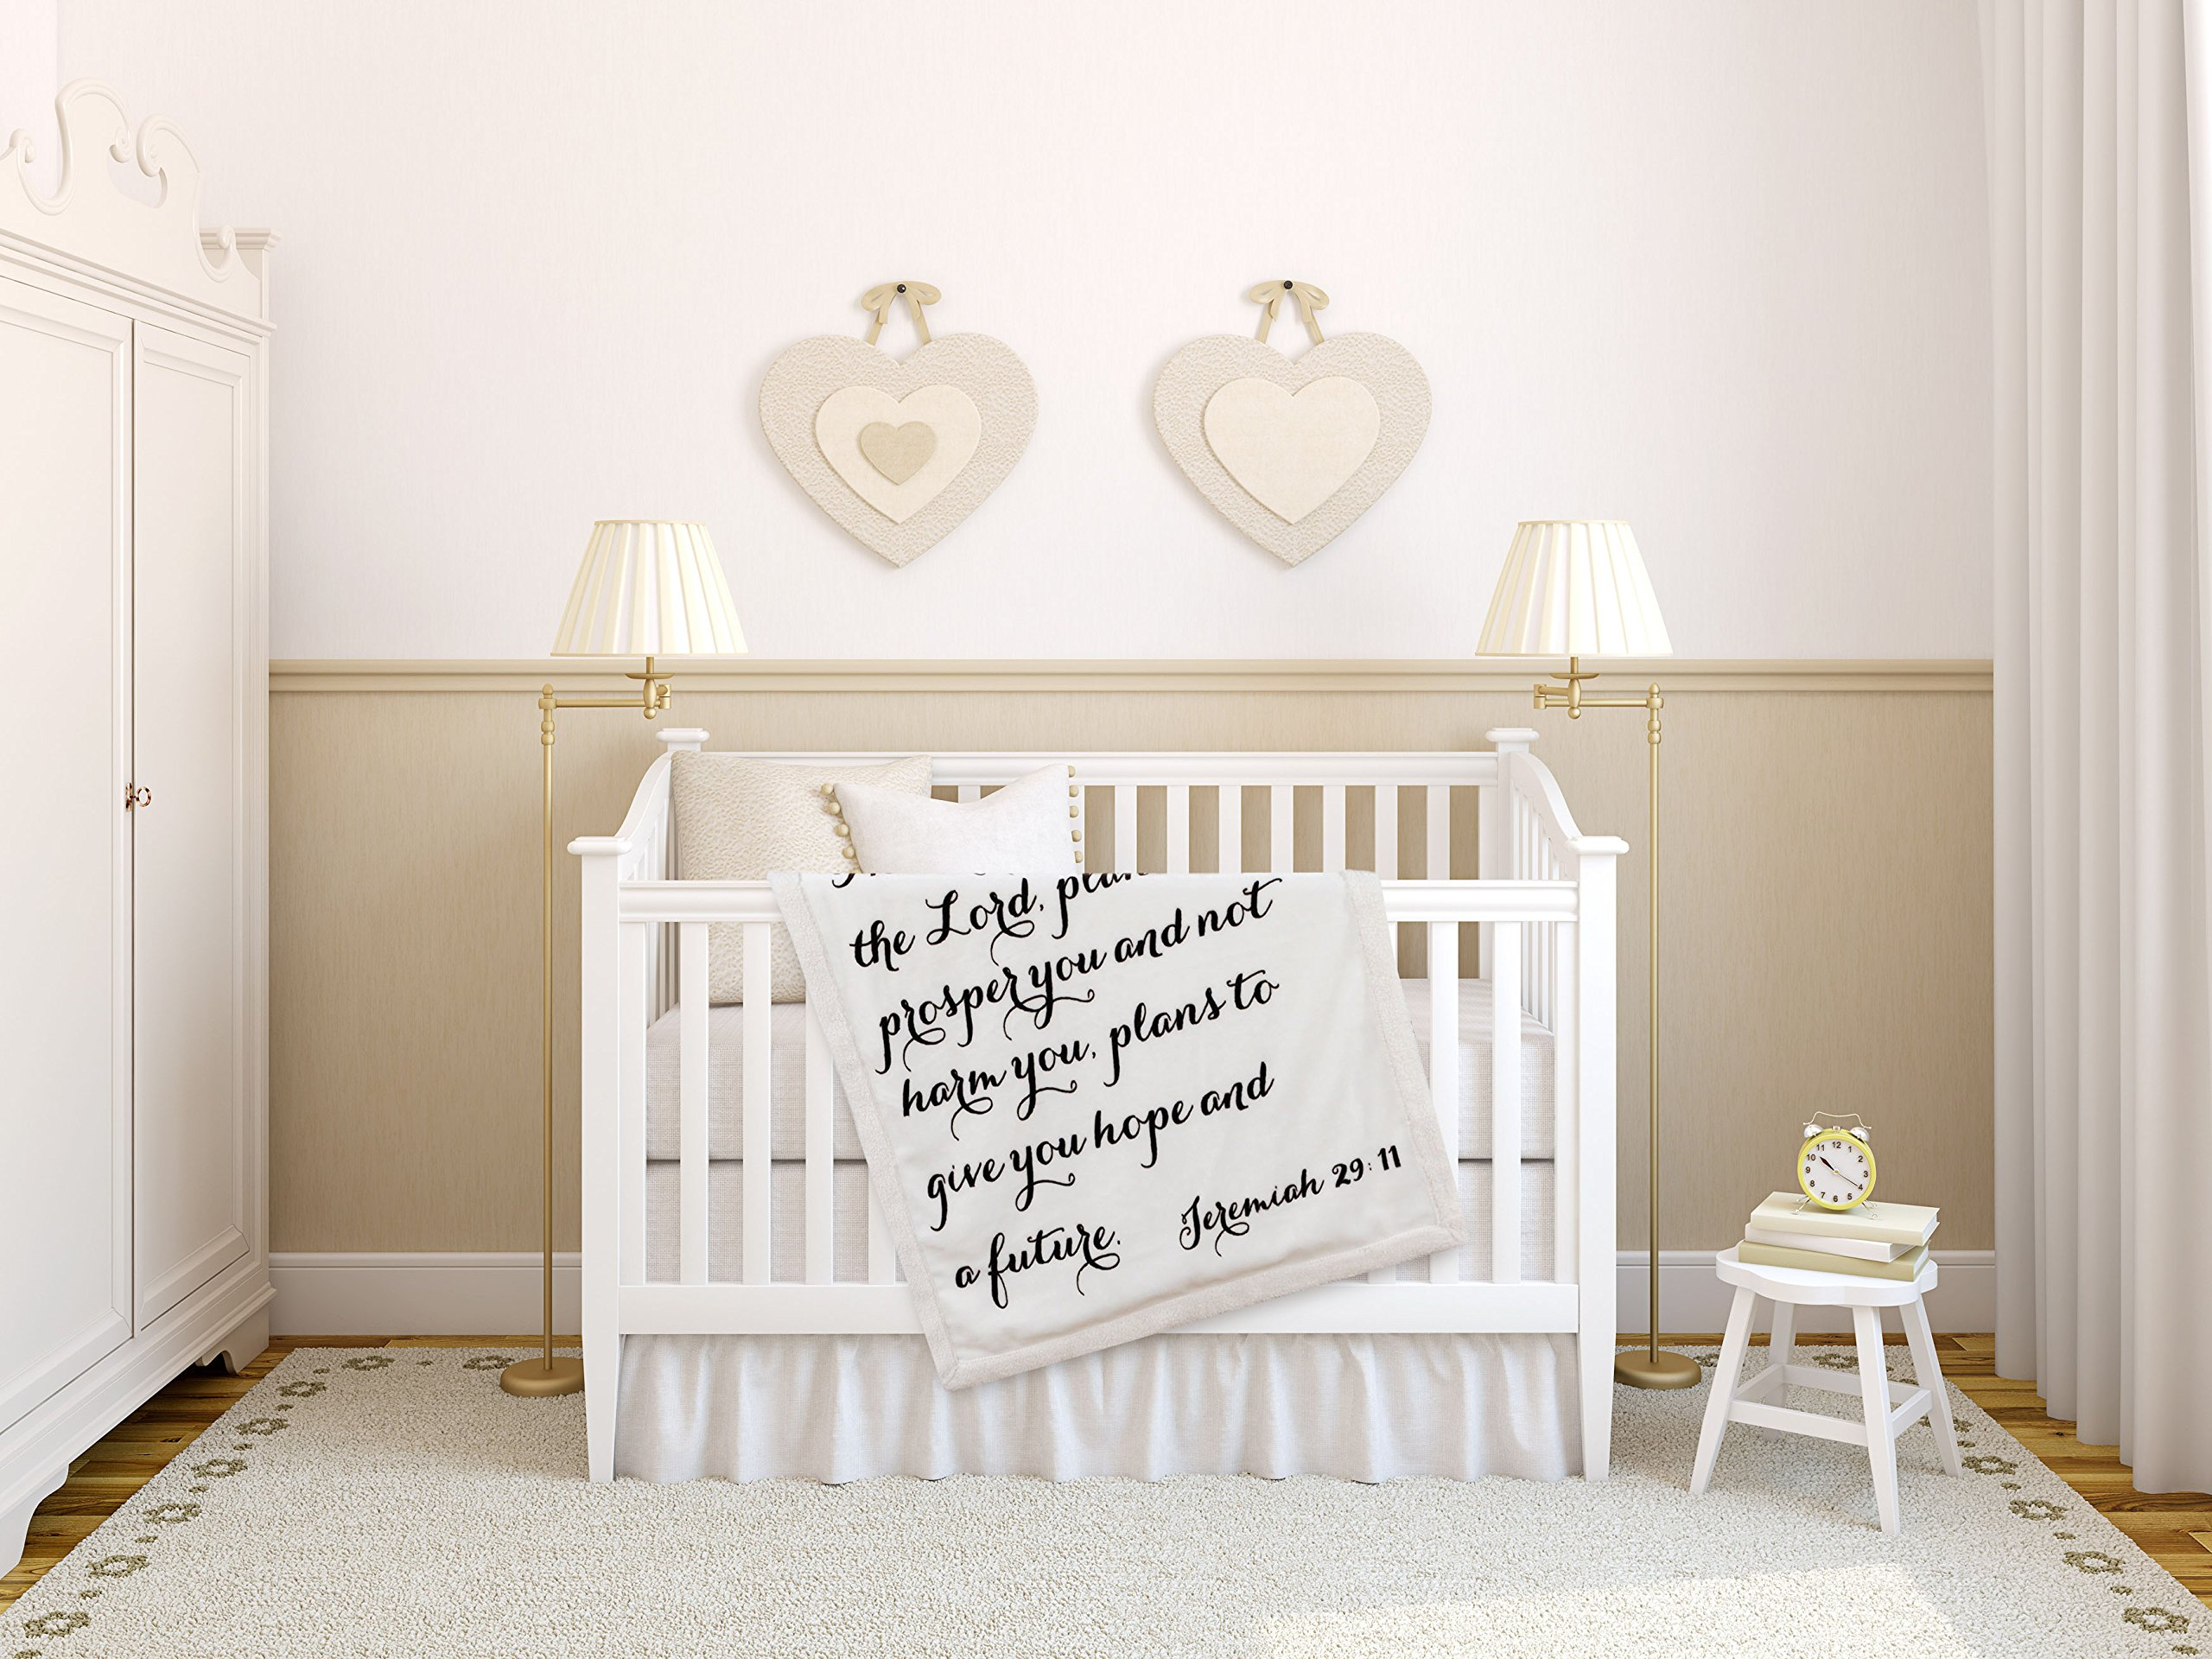 Religious Scripture Throw Blanket for Baby or Children   Jeremiah 29:11   Best Boy or Girl Shower or Birthday Gift   Ivory on Ivory Fleece Sherpa by Scripture Strong (Image #4)